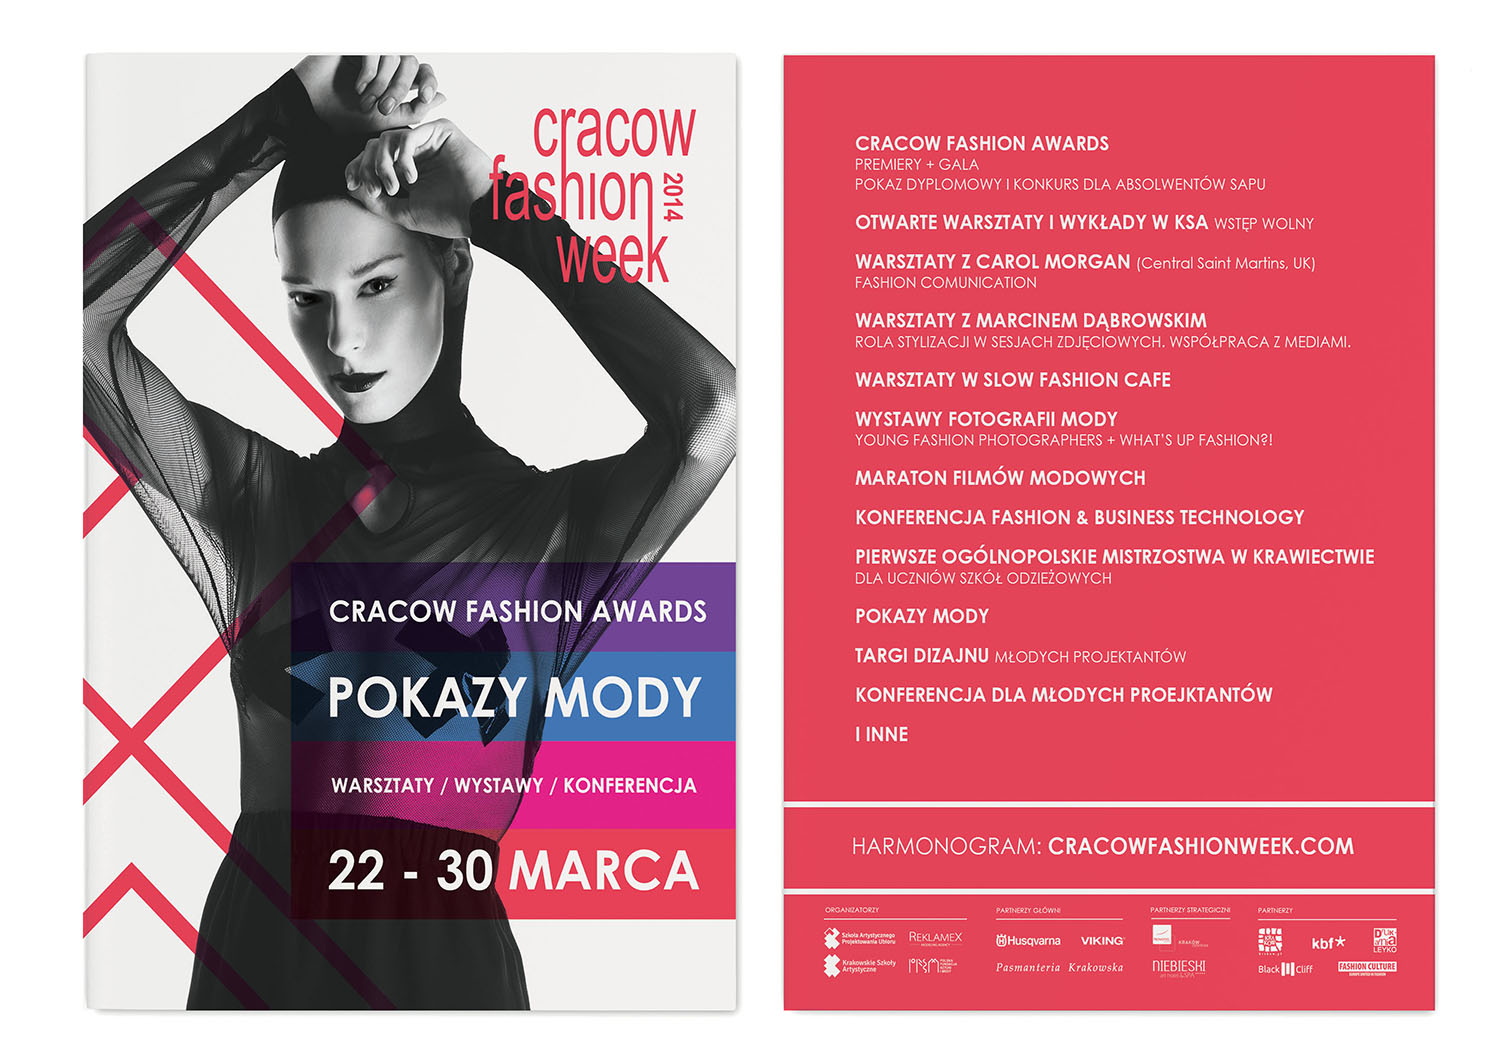 CRACOW FASHION WEEK 2014 (5)